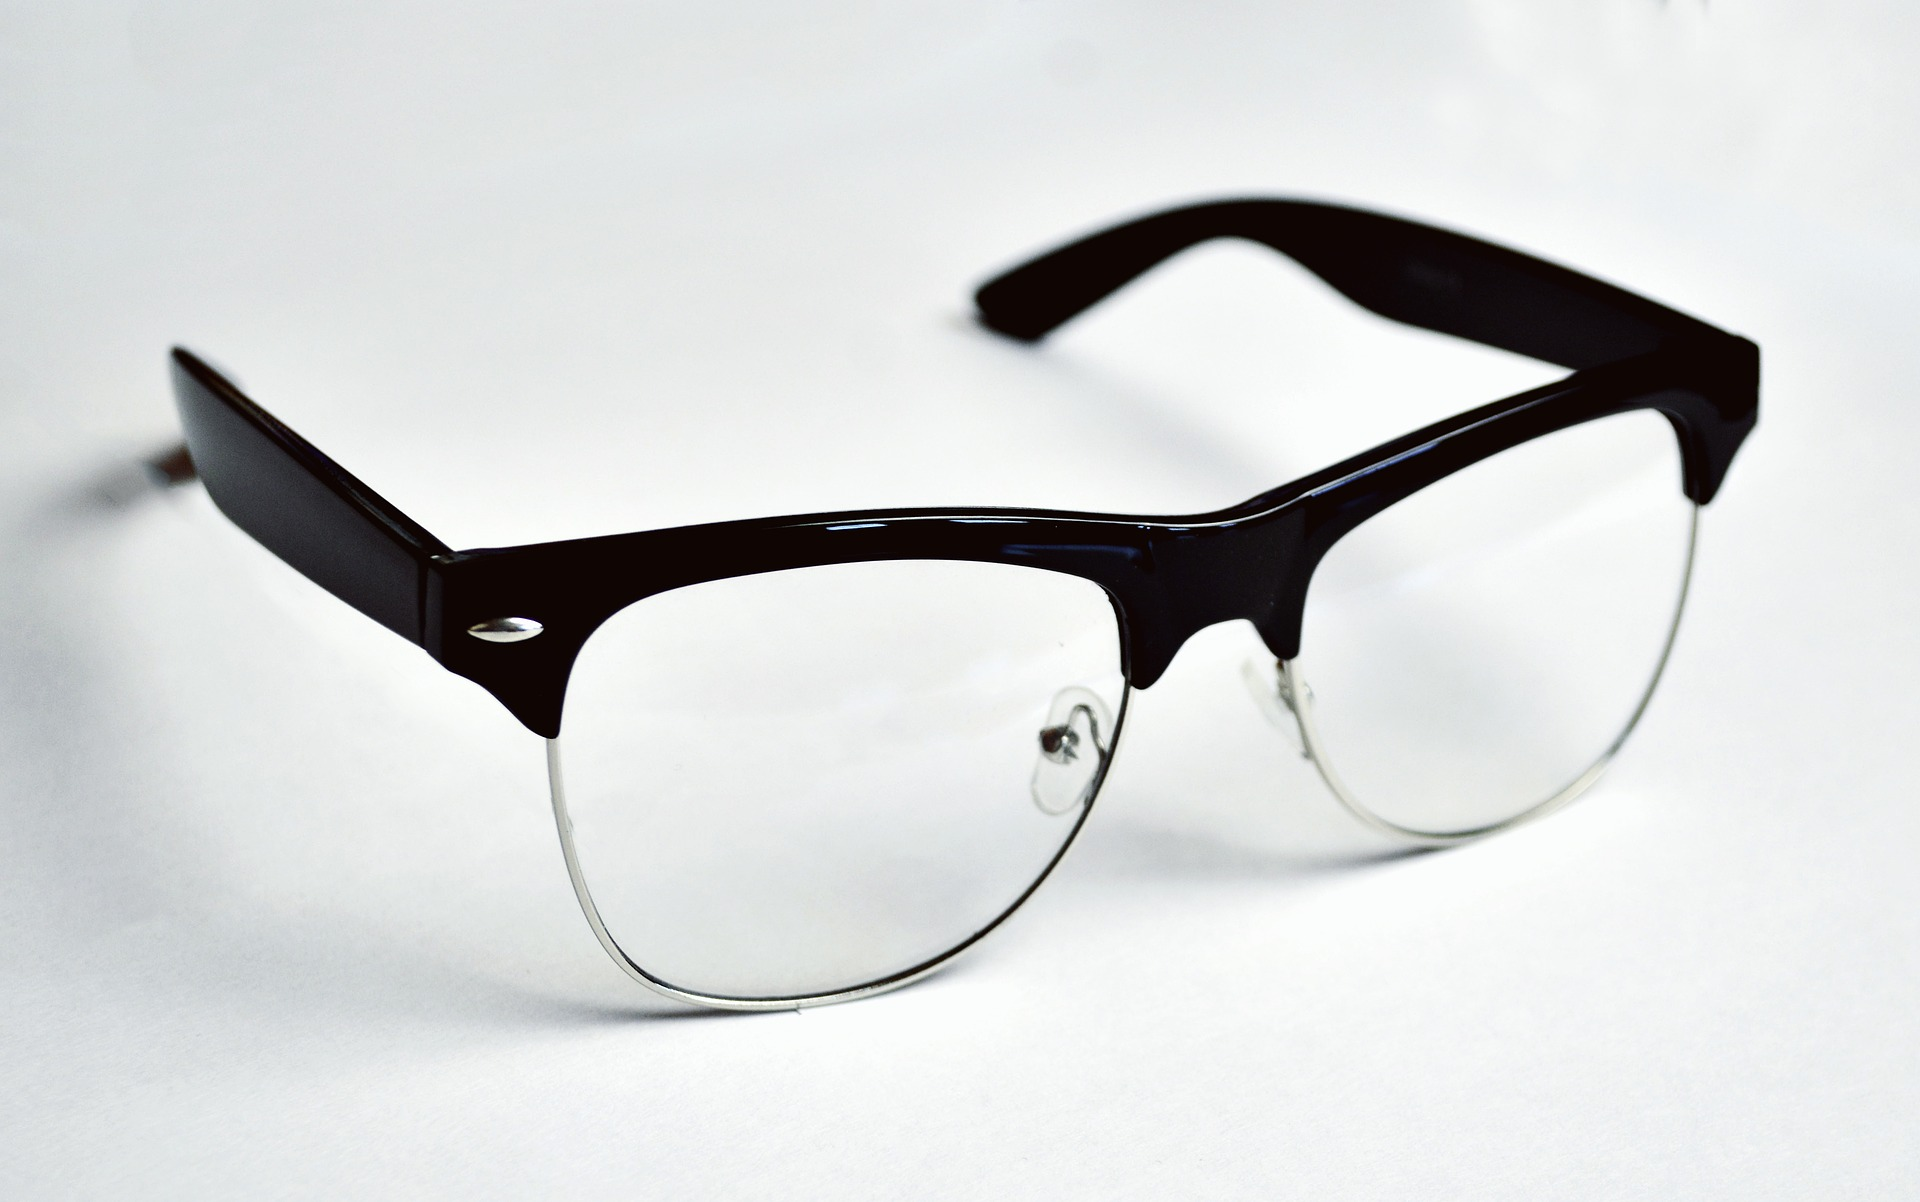 Replacement Prescription Lenses Without Replacing The Frames